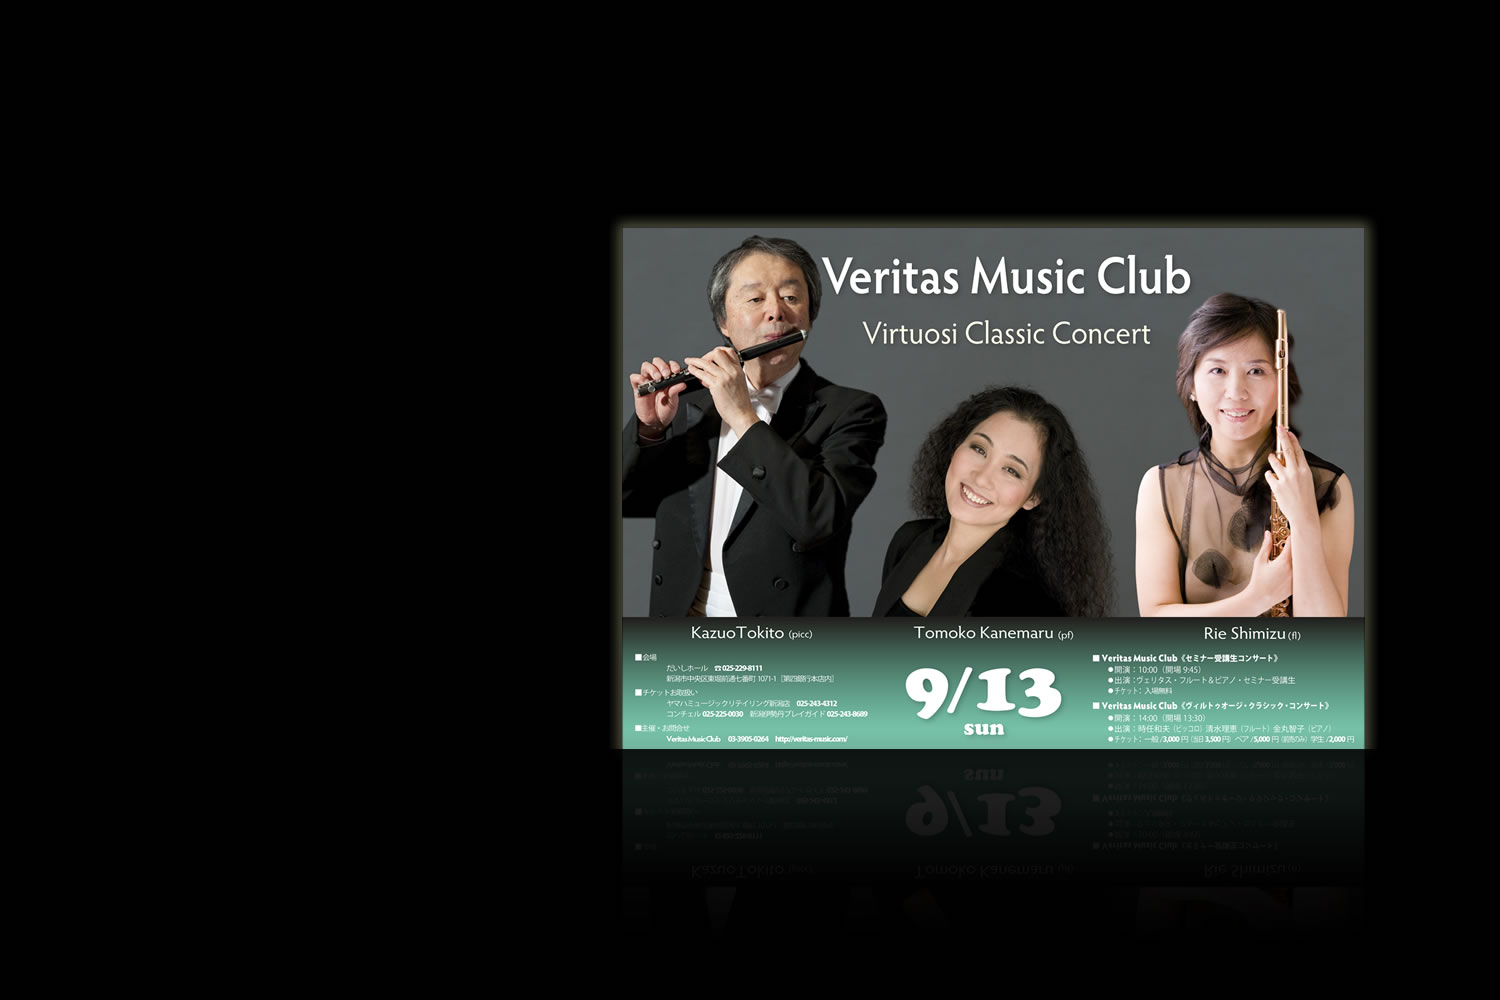 9/13 VERITAS MUSIC CLUB  〜VIRTUOSI CLASSIC CONCERT〜